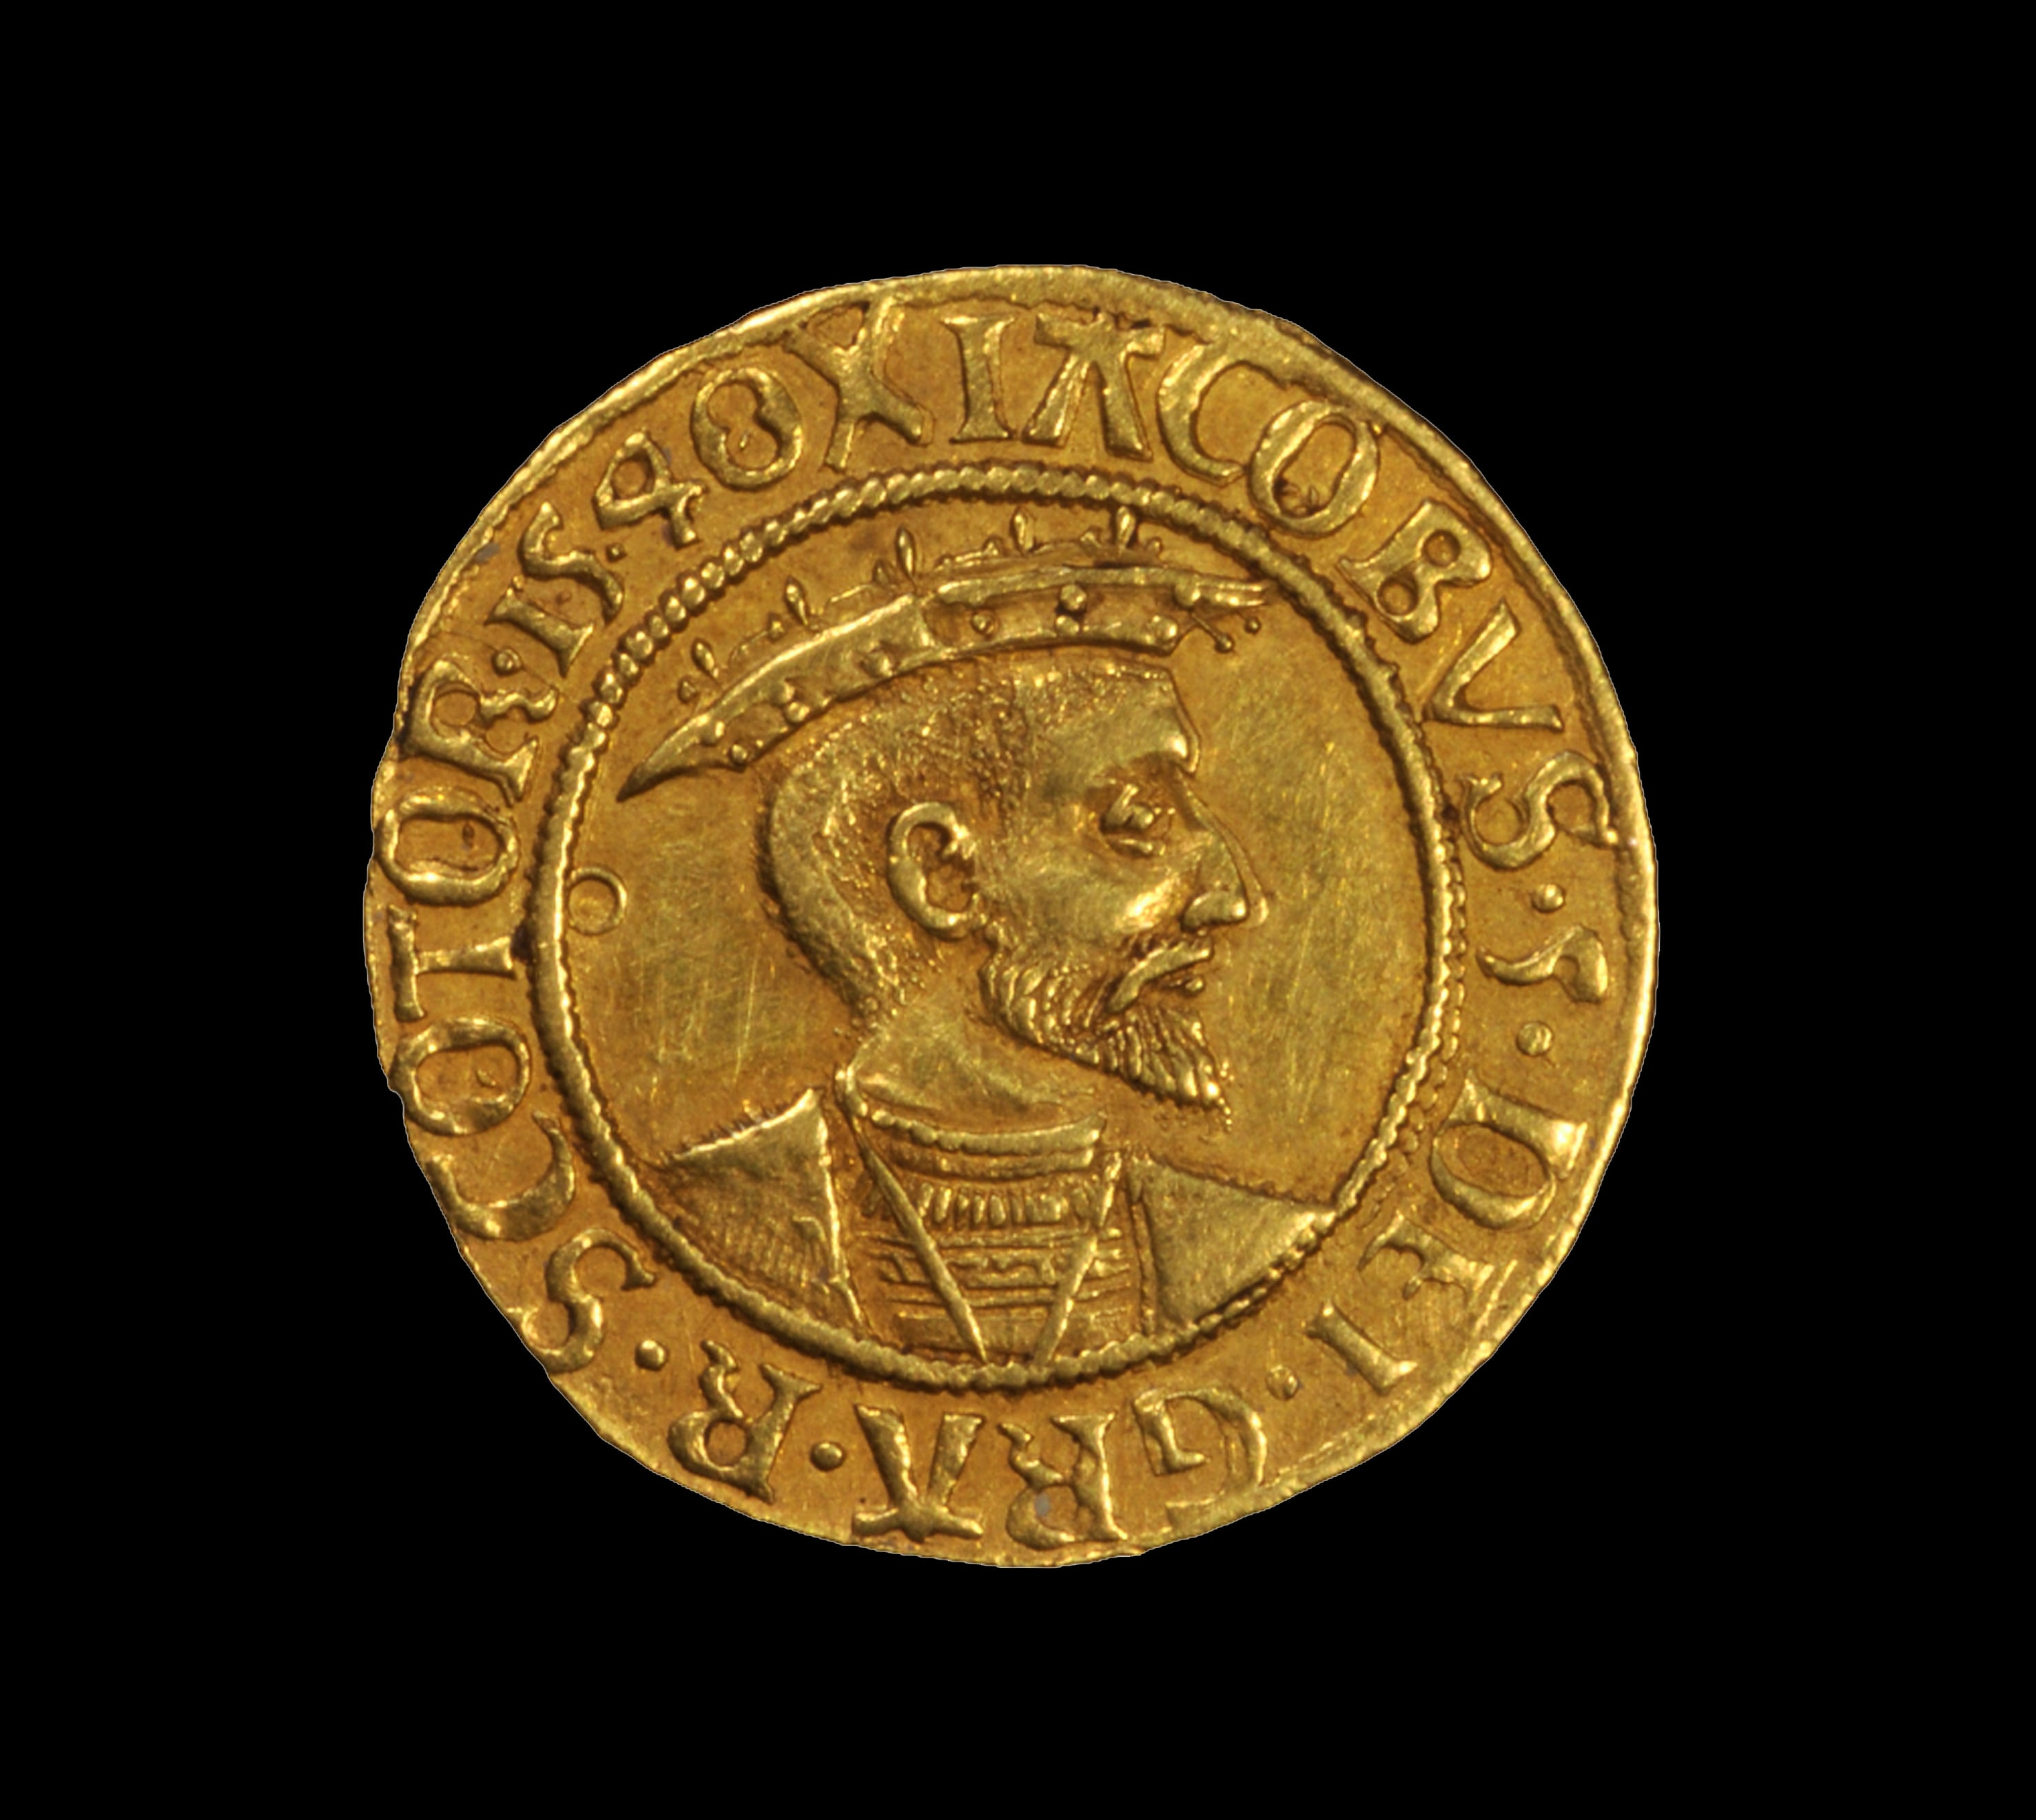 4. Scottish Gold, until 15 June 2014 - Hunterian Art Gallery, Glasgow. 50% off with National Art Pass